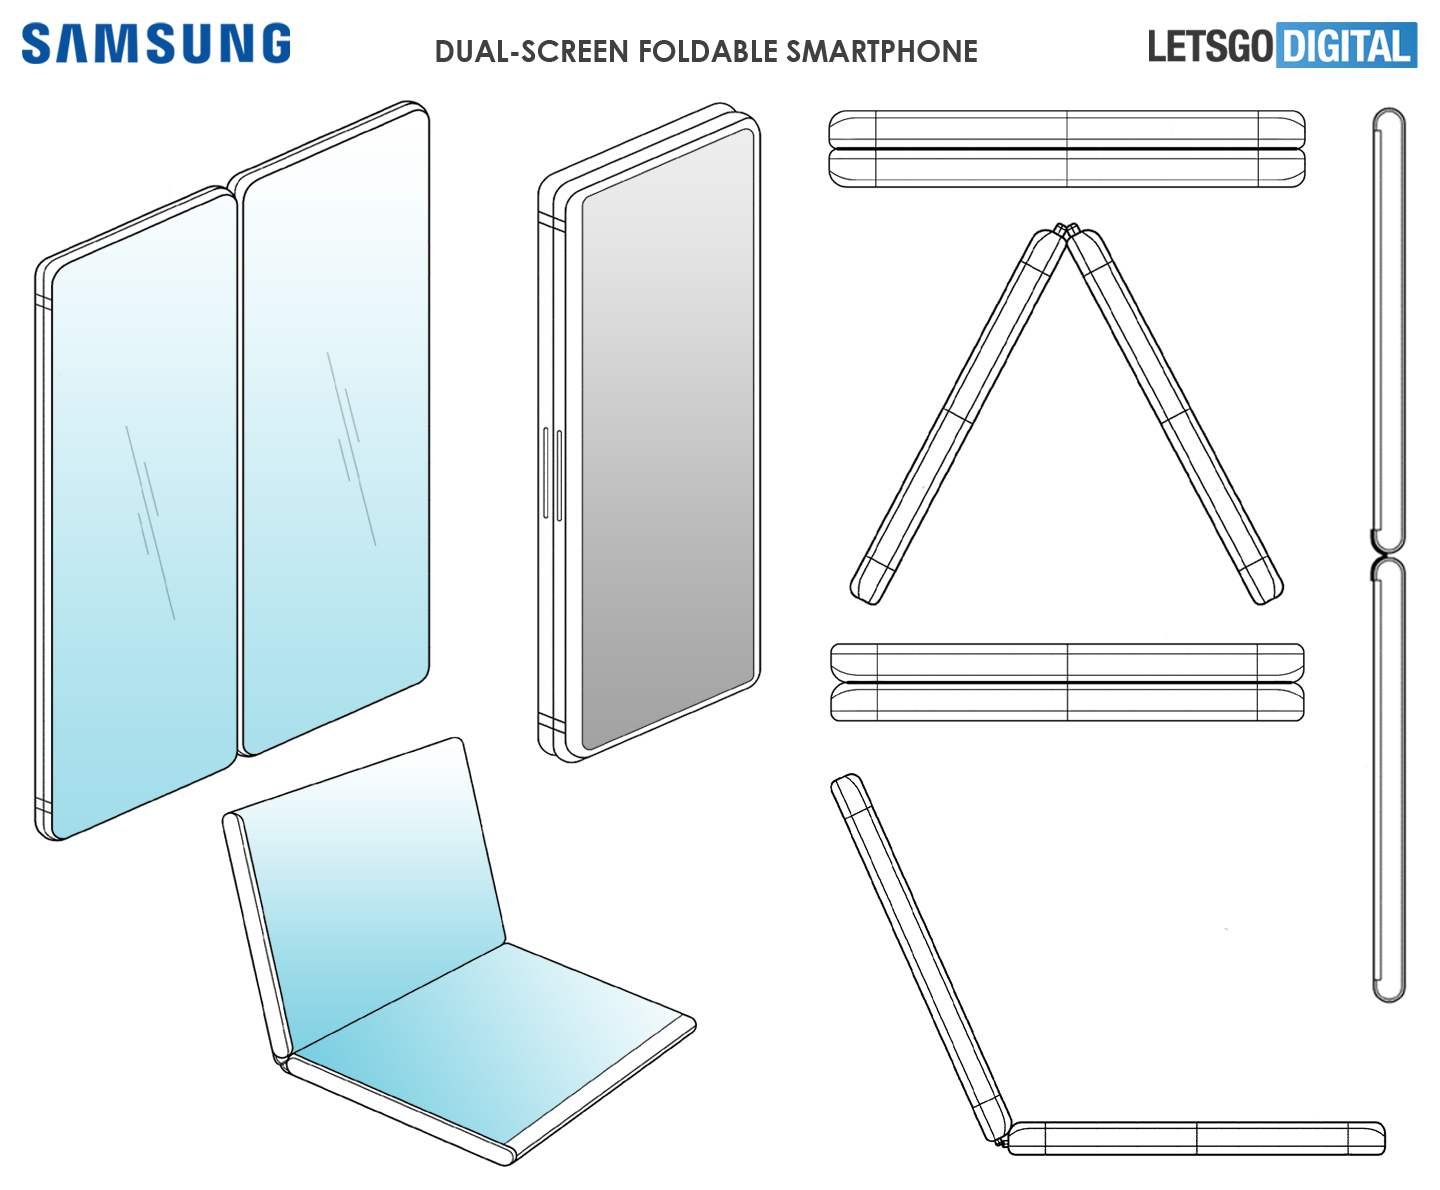 Samsung dual-screen smartphone